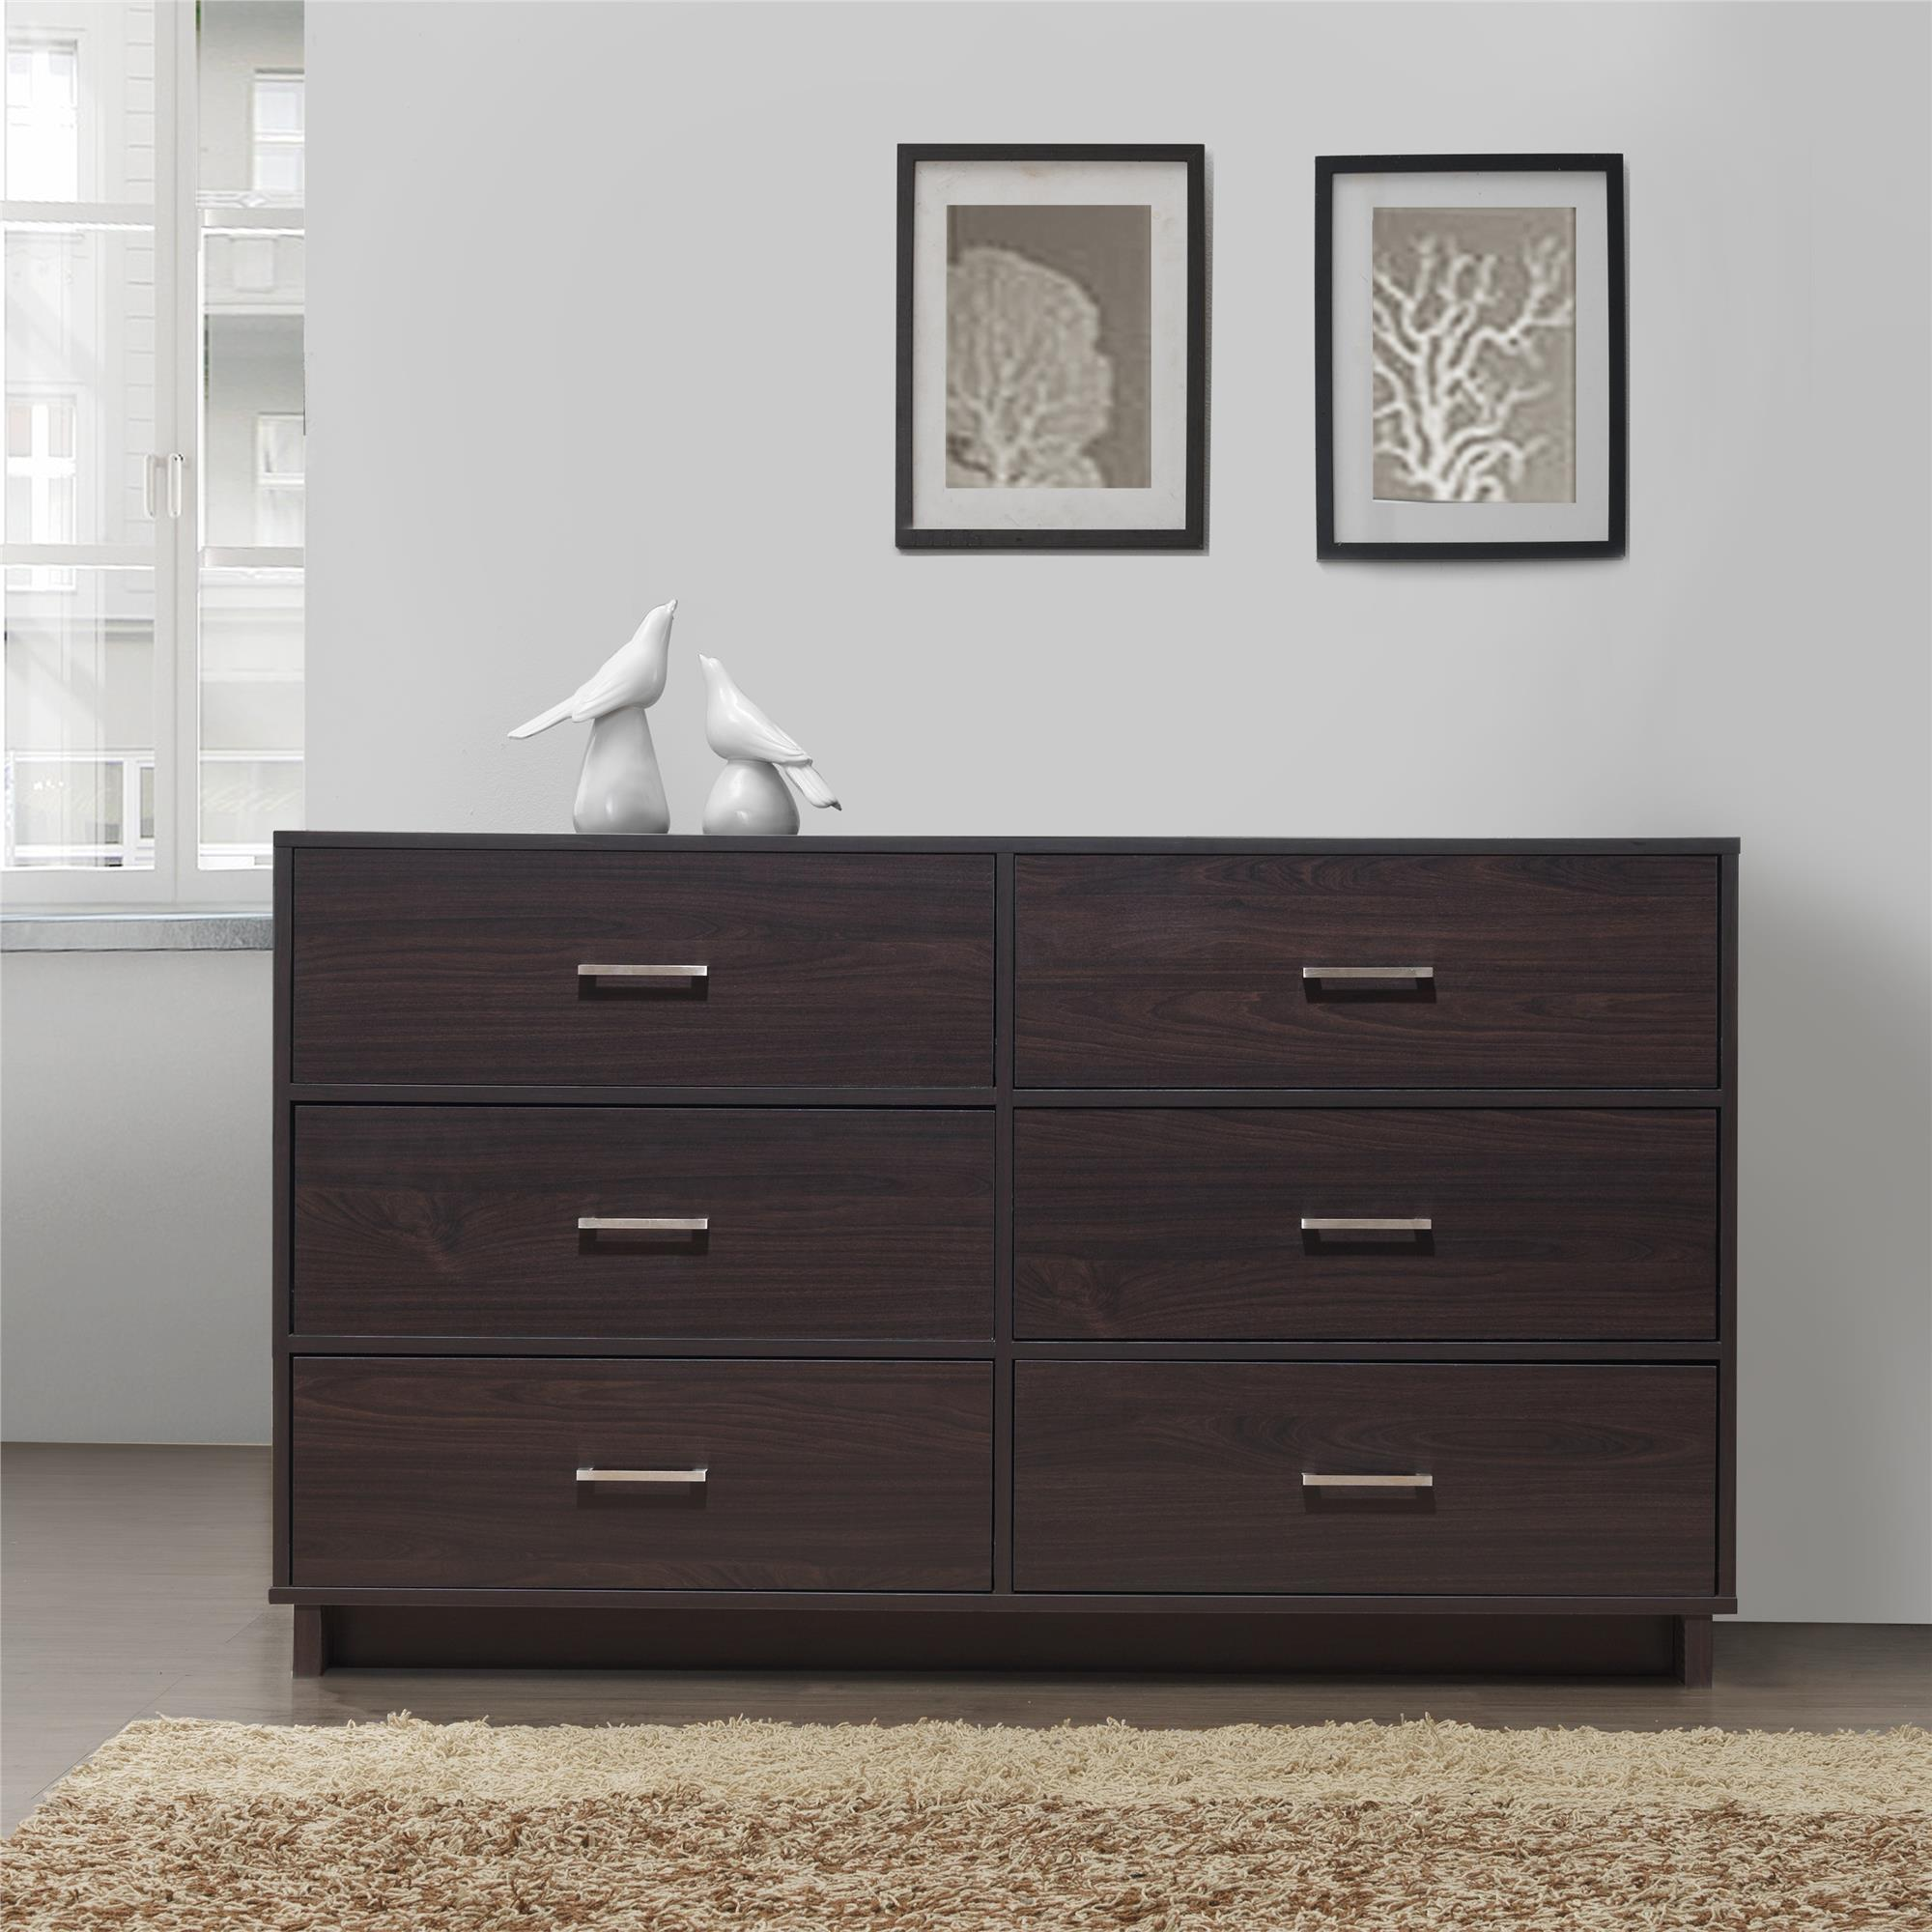 Clay Alder Home Troja Contemporary 6-drawer Dresser